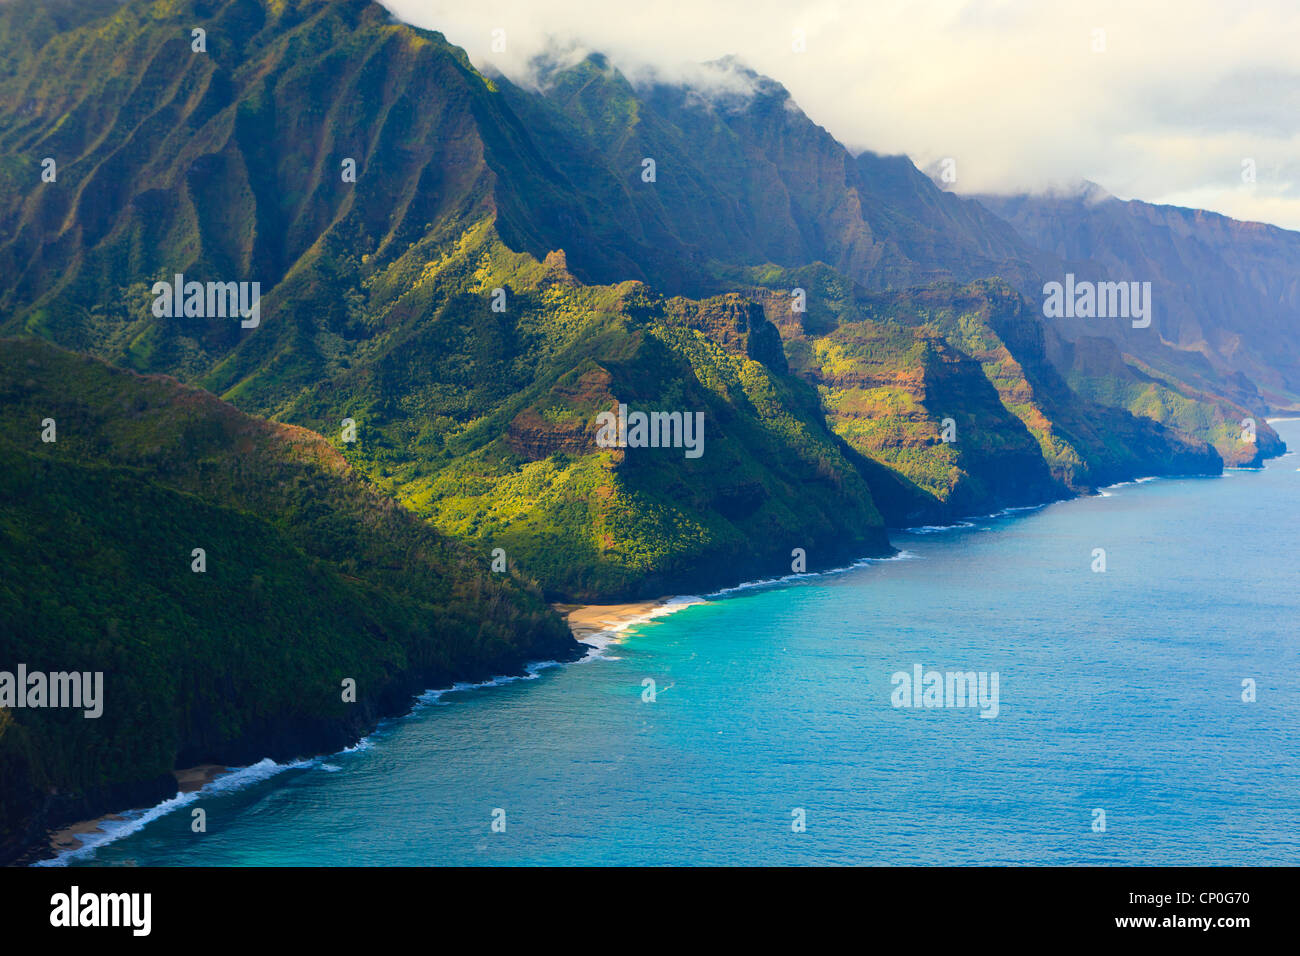 Helicopter view over Napali coastline. Kauai, Hawaii - Stock Image